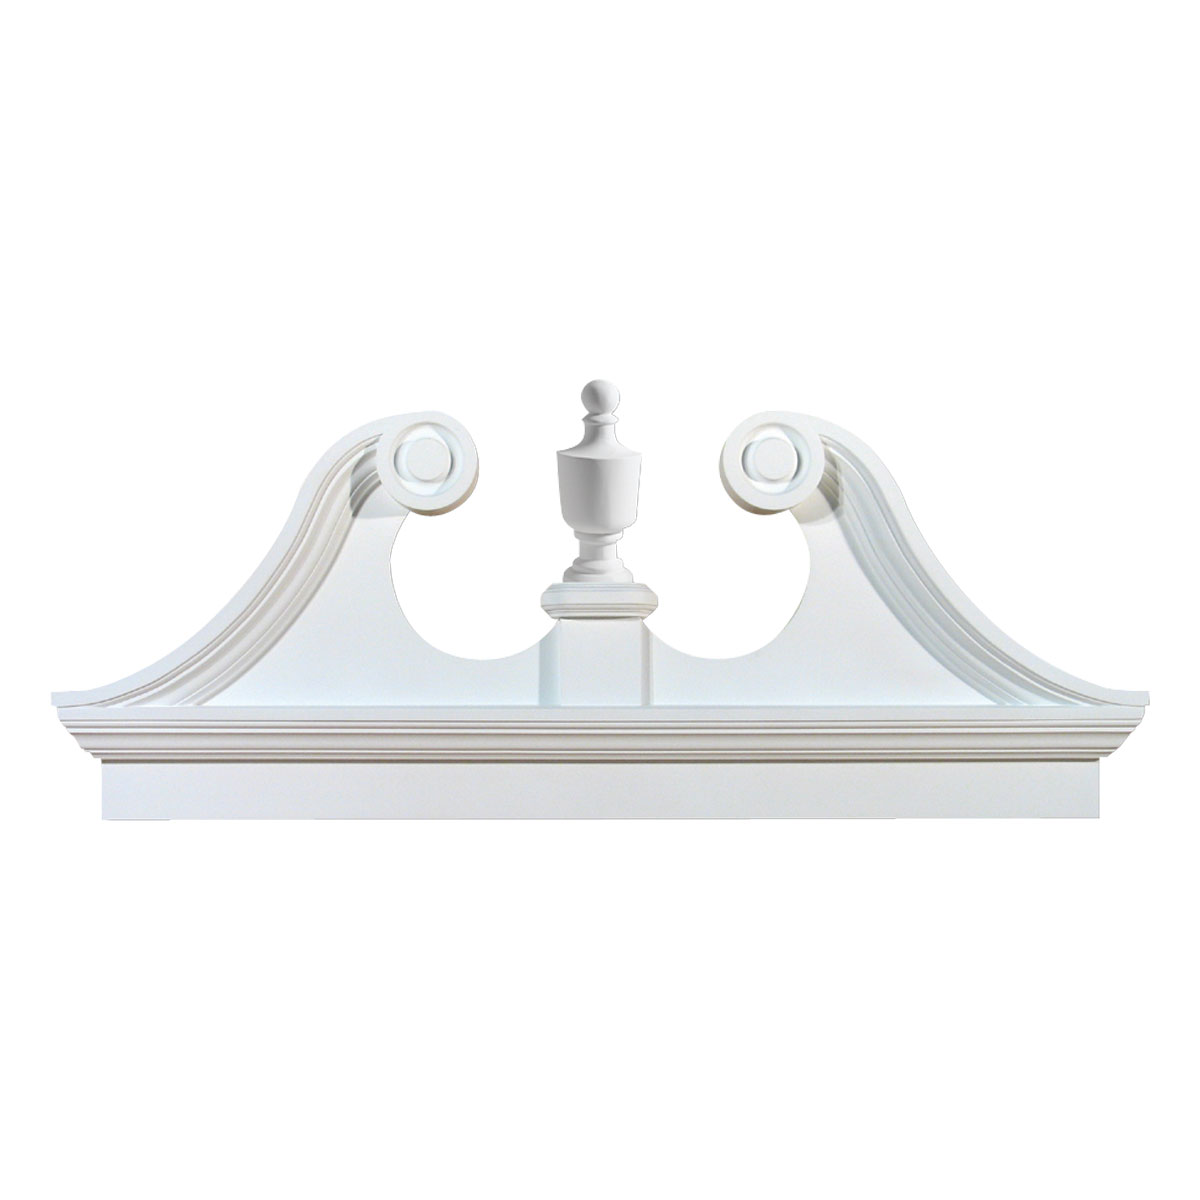 inch ow x 27 inch h x 3 1 8 inch p combination rams head pediment